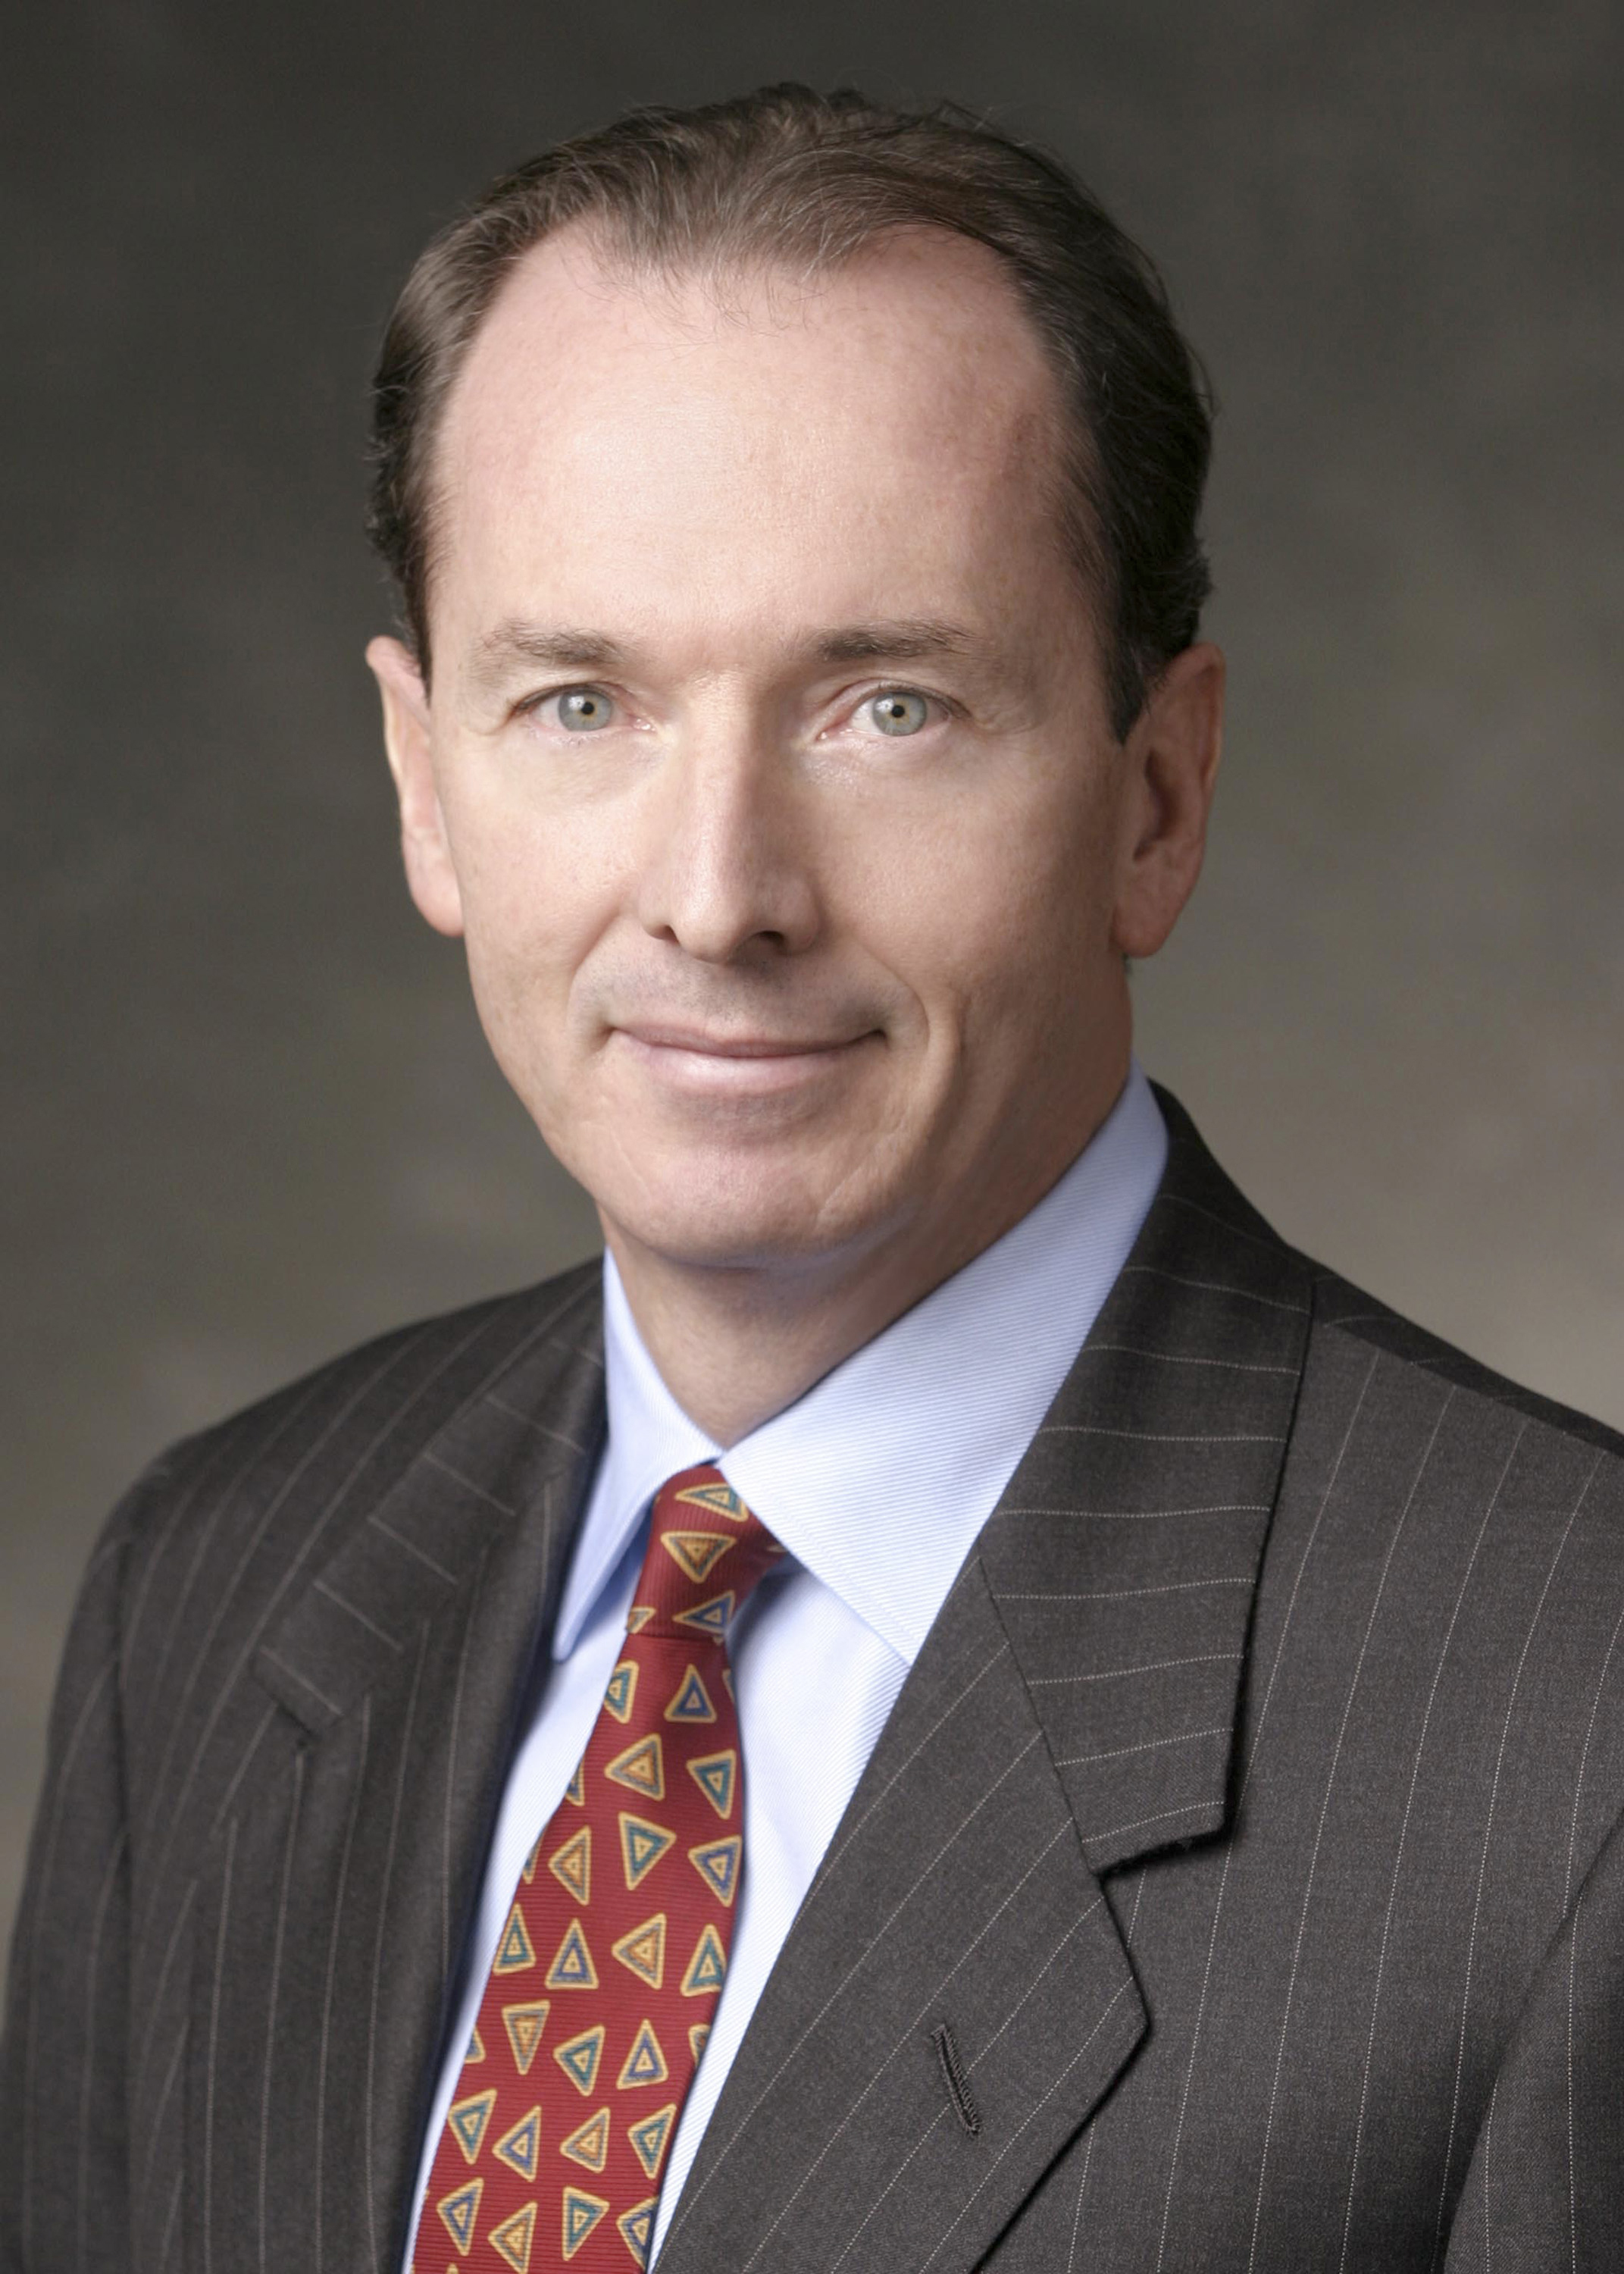 Morgan Stanley President and CEO James P. Gorman. Also going to have a good week.